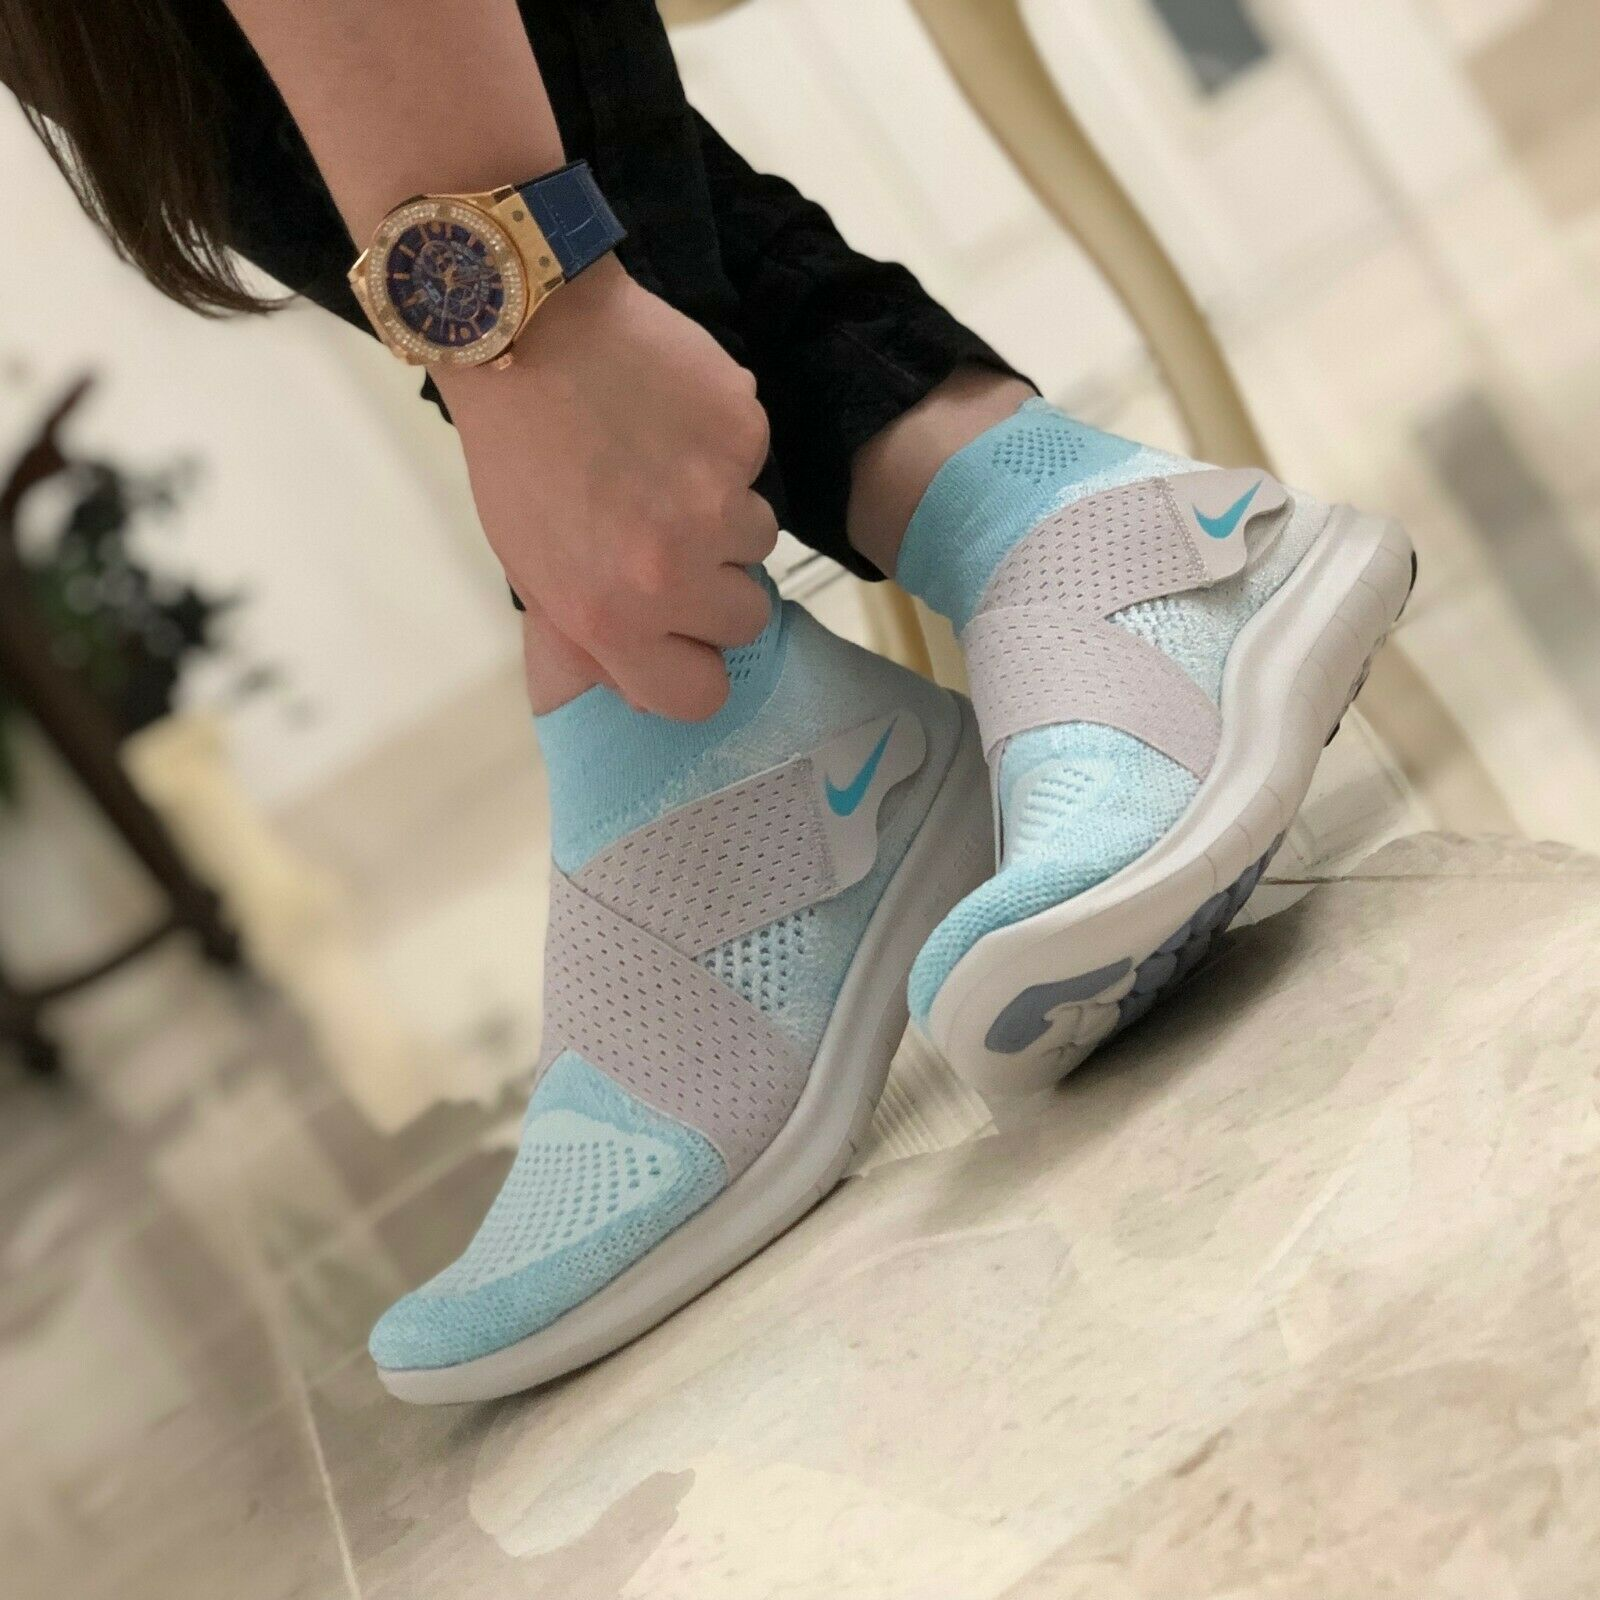 Running Shoes Size 8.5 Style 880846-402